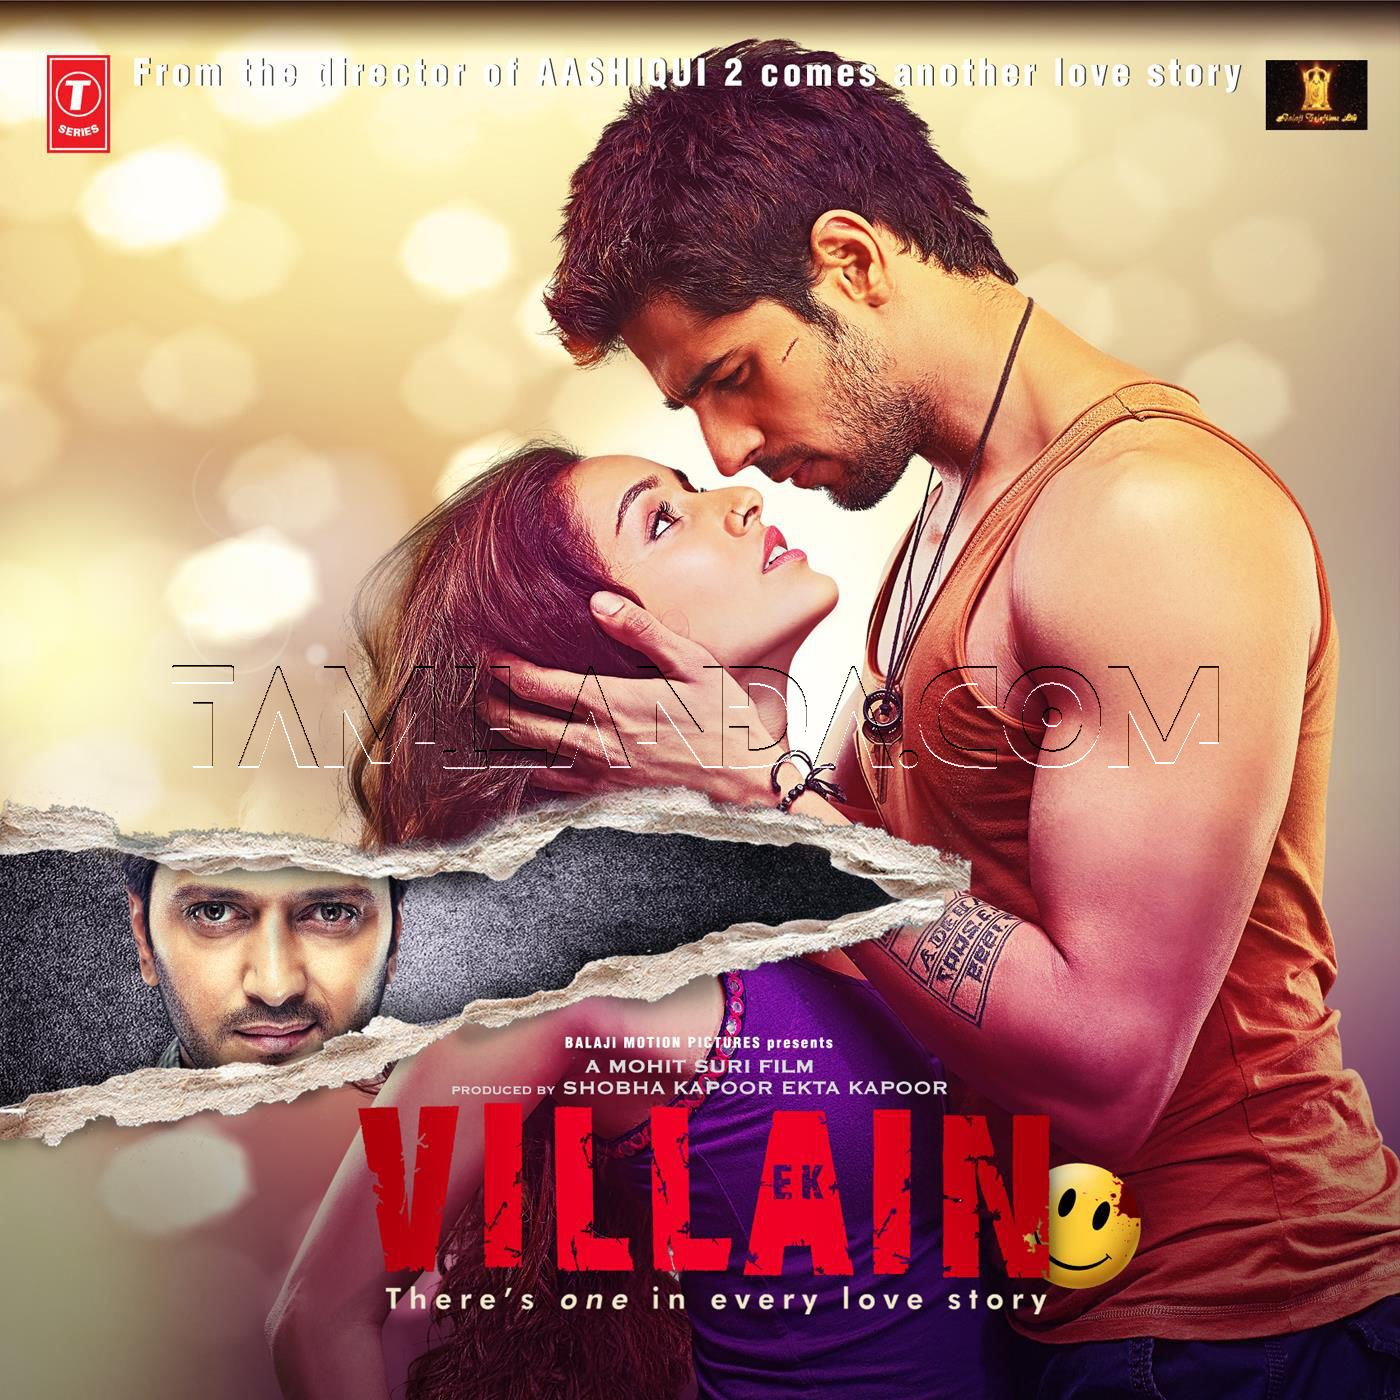 Ek Villain (2014) FLAC/WAV Songs